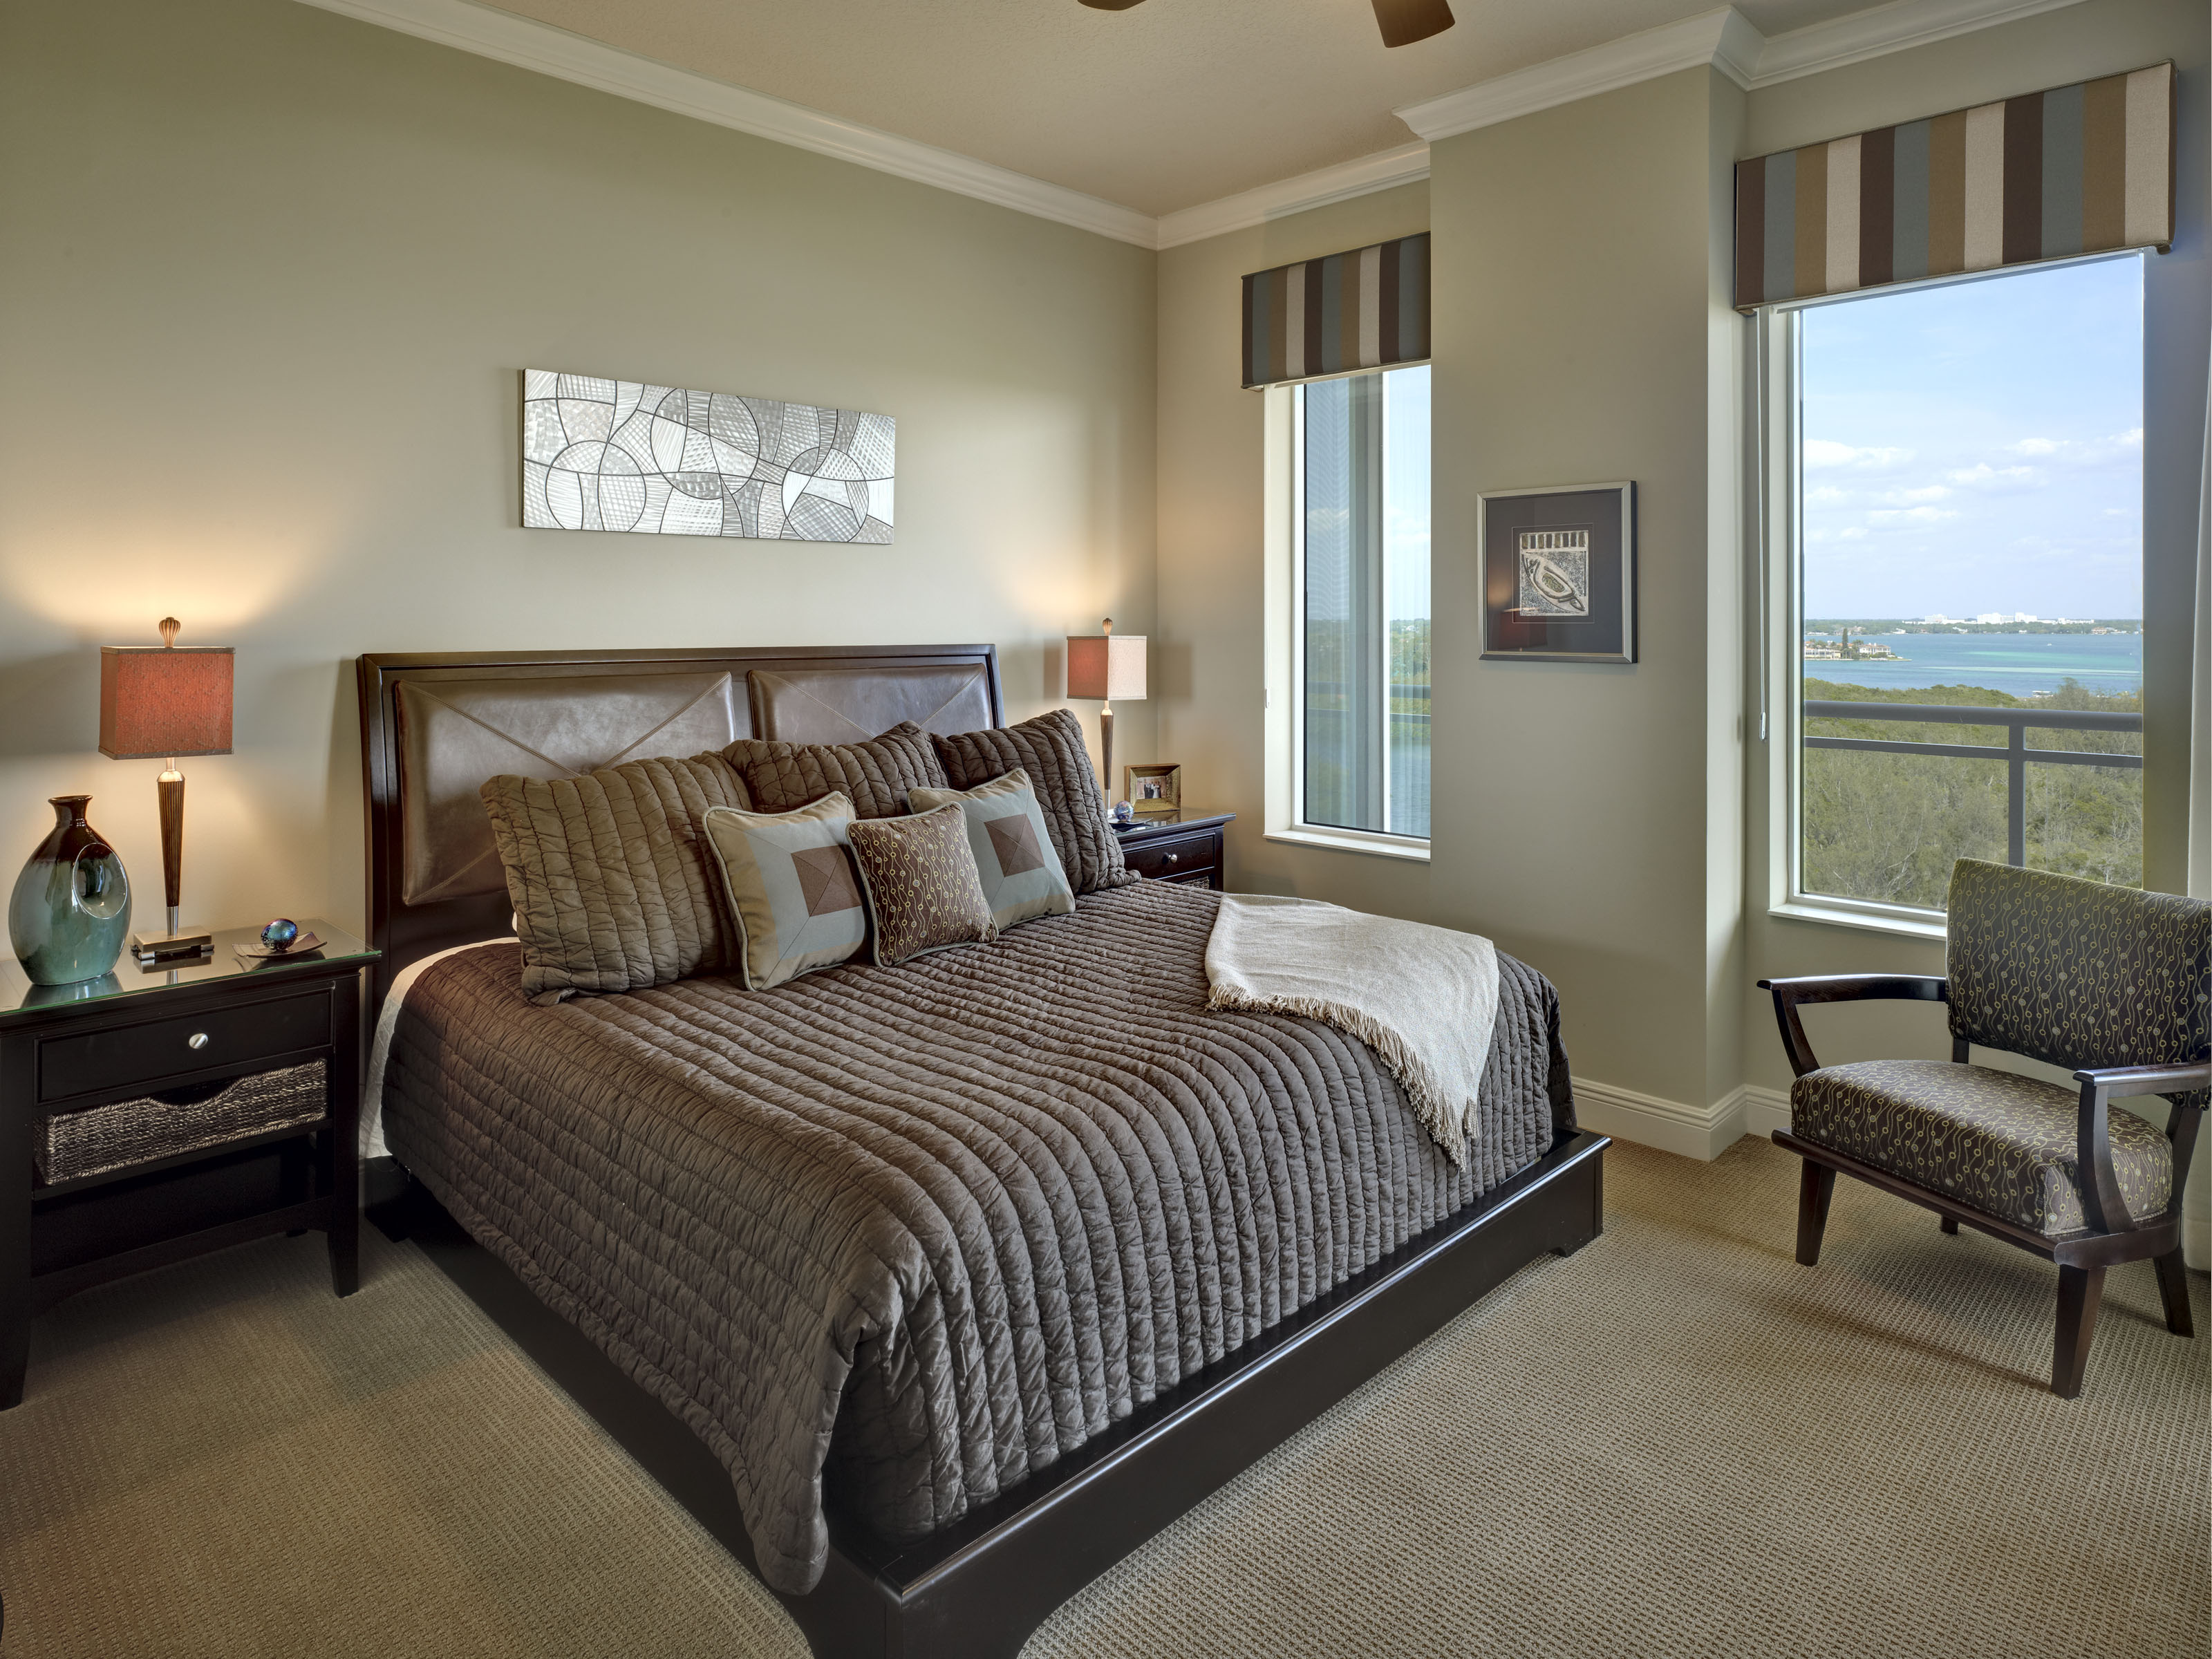 Beautiful Guest Bedrooms | Blog | Gribble Interior Group on Beautiful Room Pics  id=58536